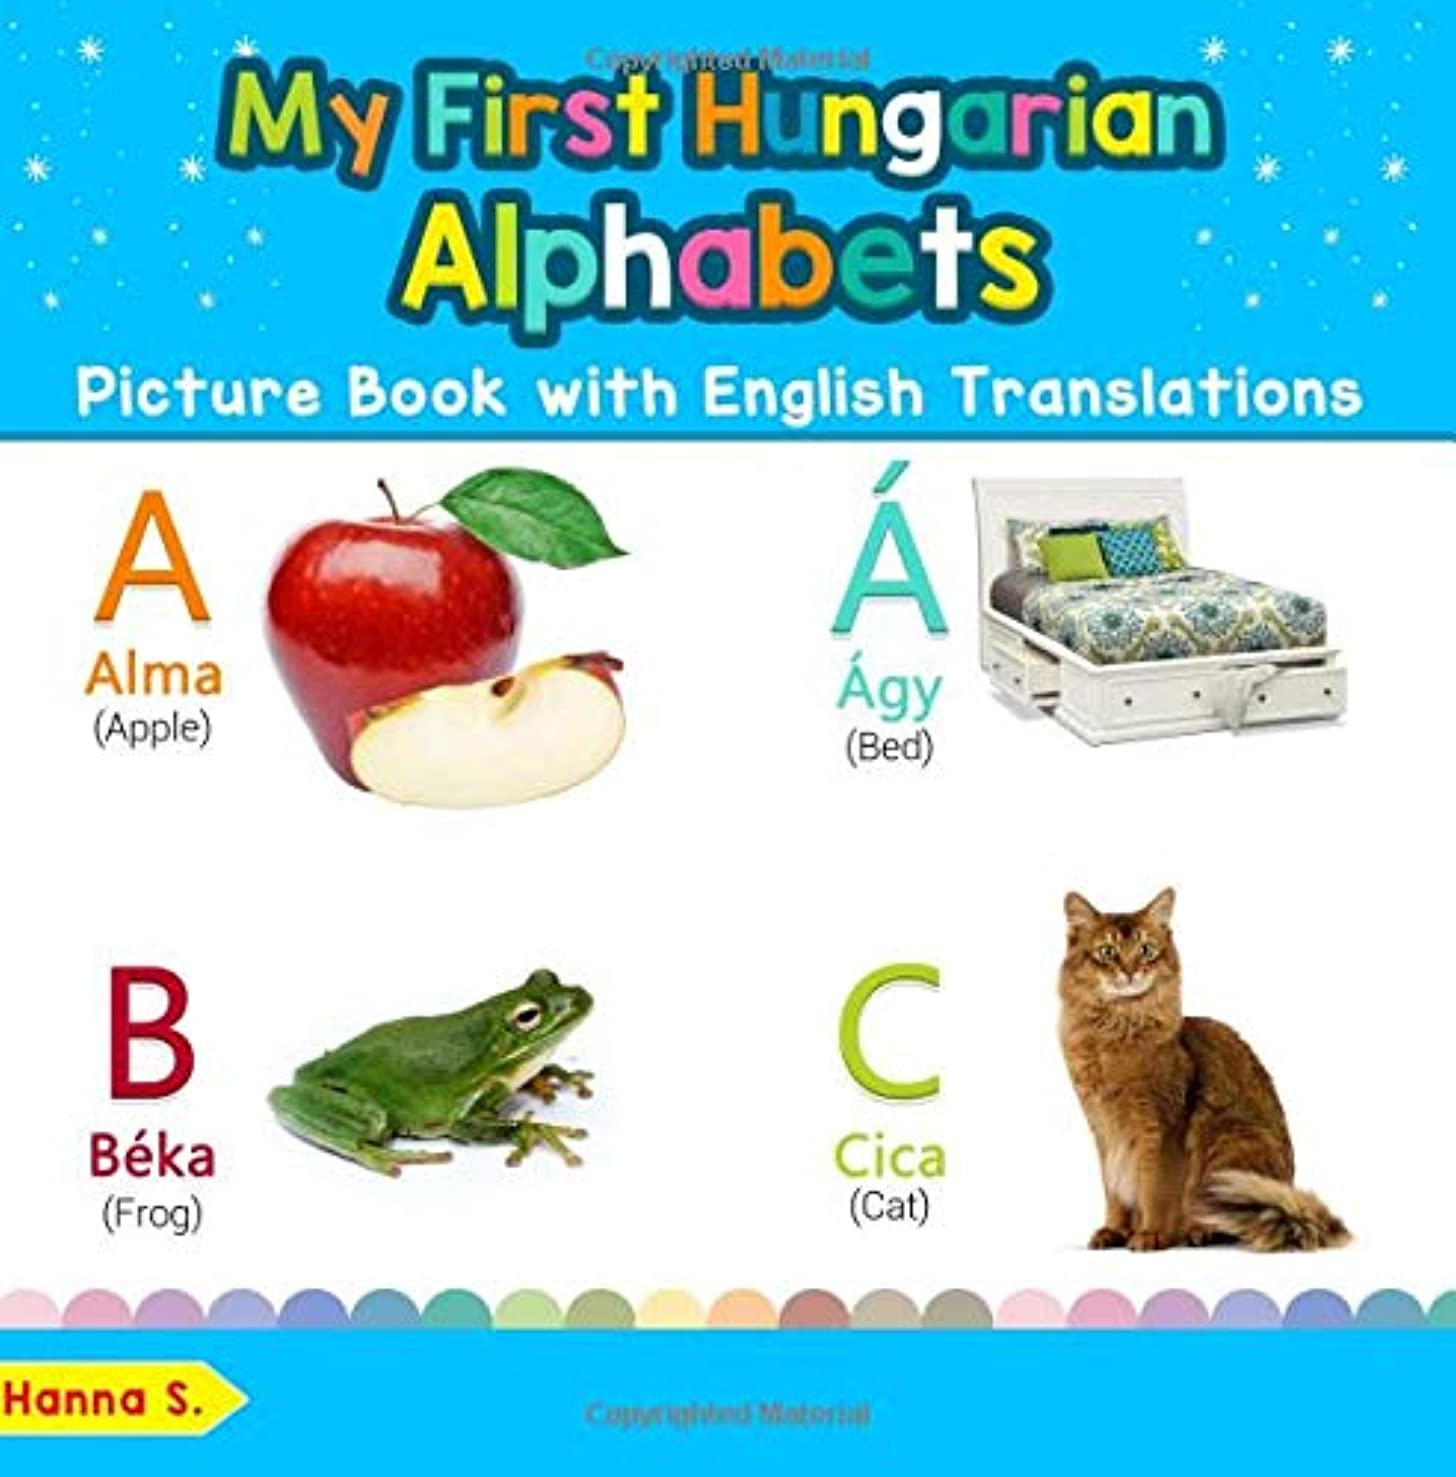 My First Hungarian Alphabets Picture Book with English Translations: Bilingual Early Learning & Easy Teaching Hungarian Books for Kids (Teach & Learn ... for Children) (Volume 1) (Hungarian Edition)